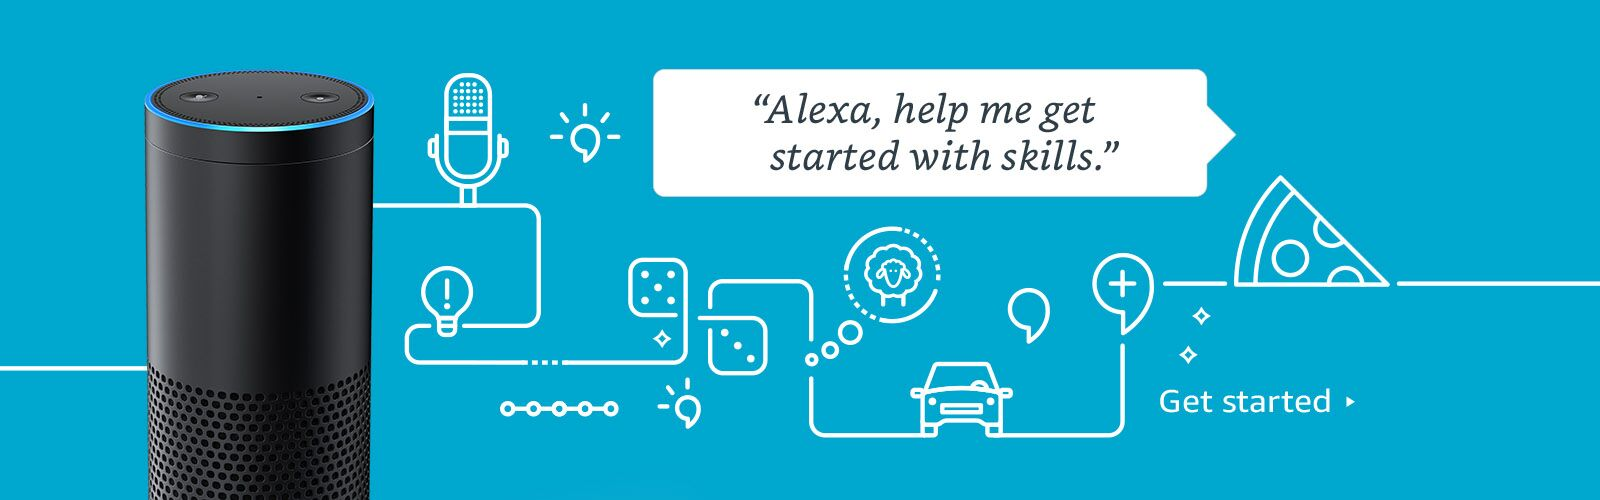 Amazon Alexa Skill Development